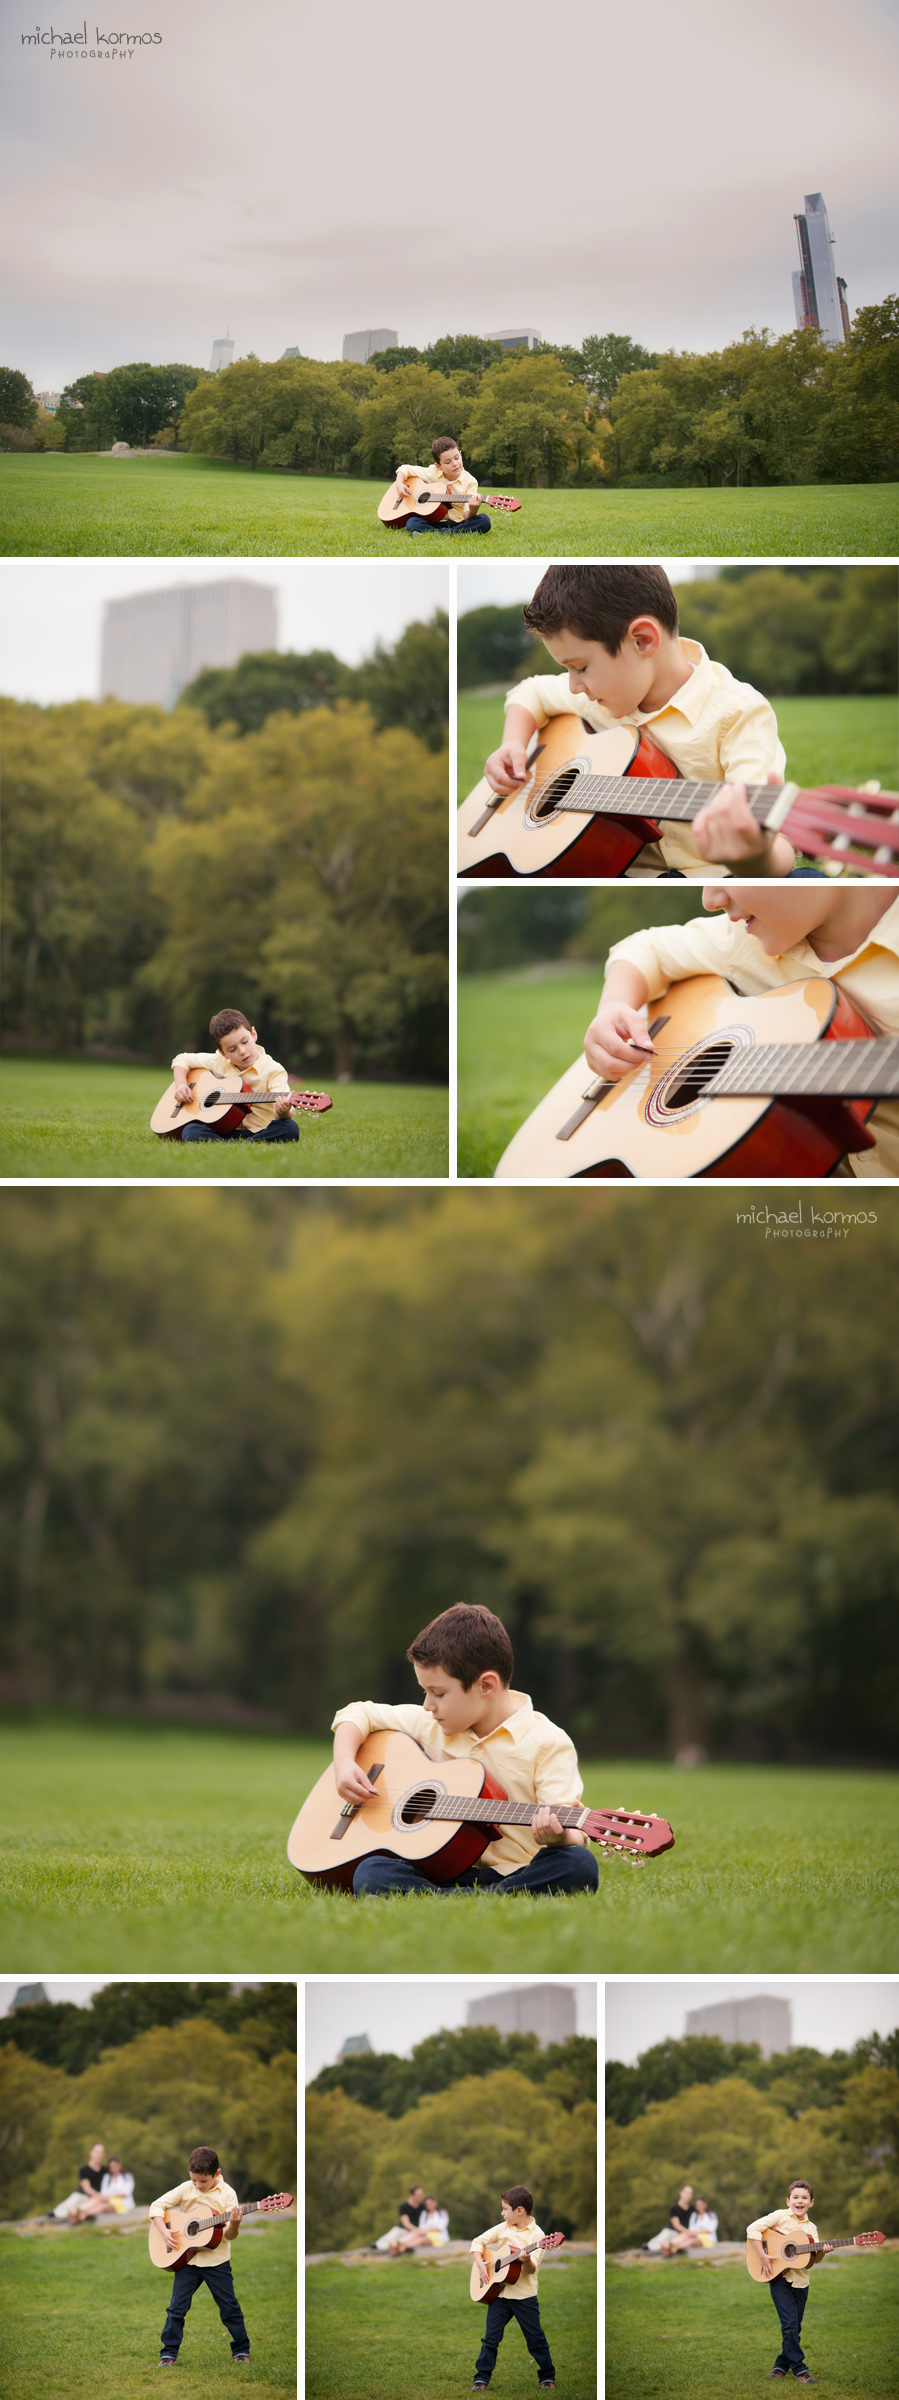 boy playing his guitar in Central Park Manhattan